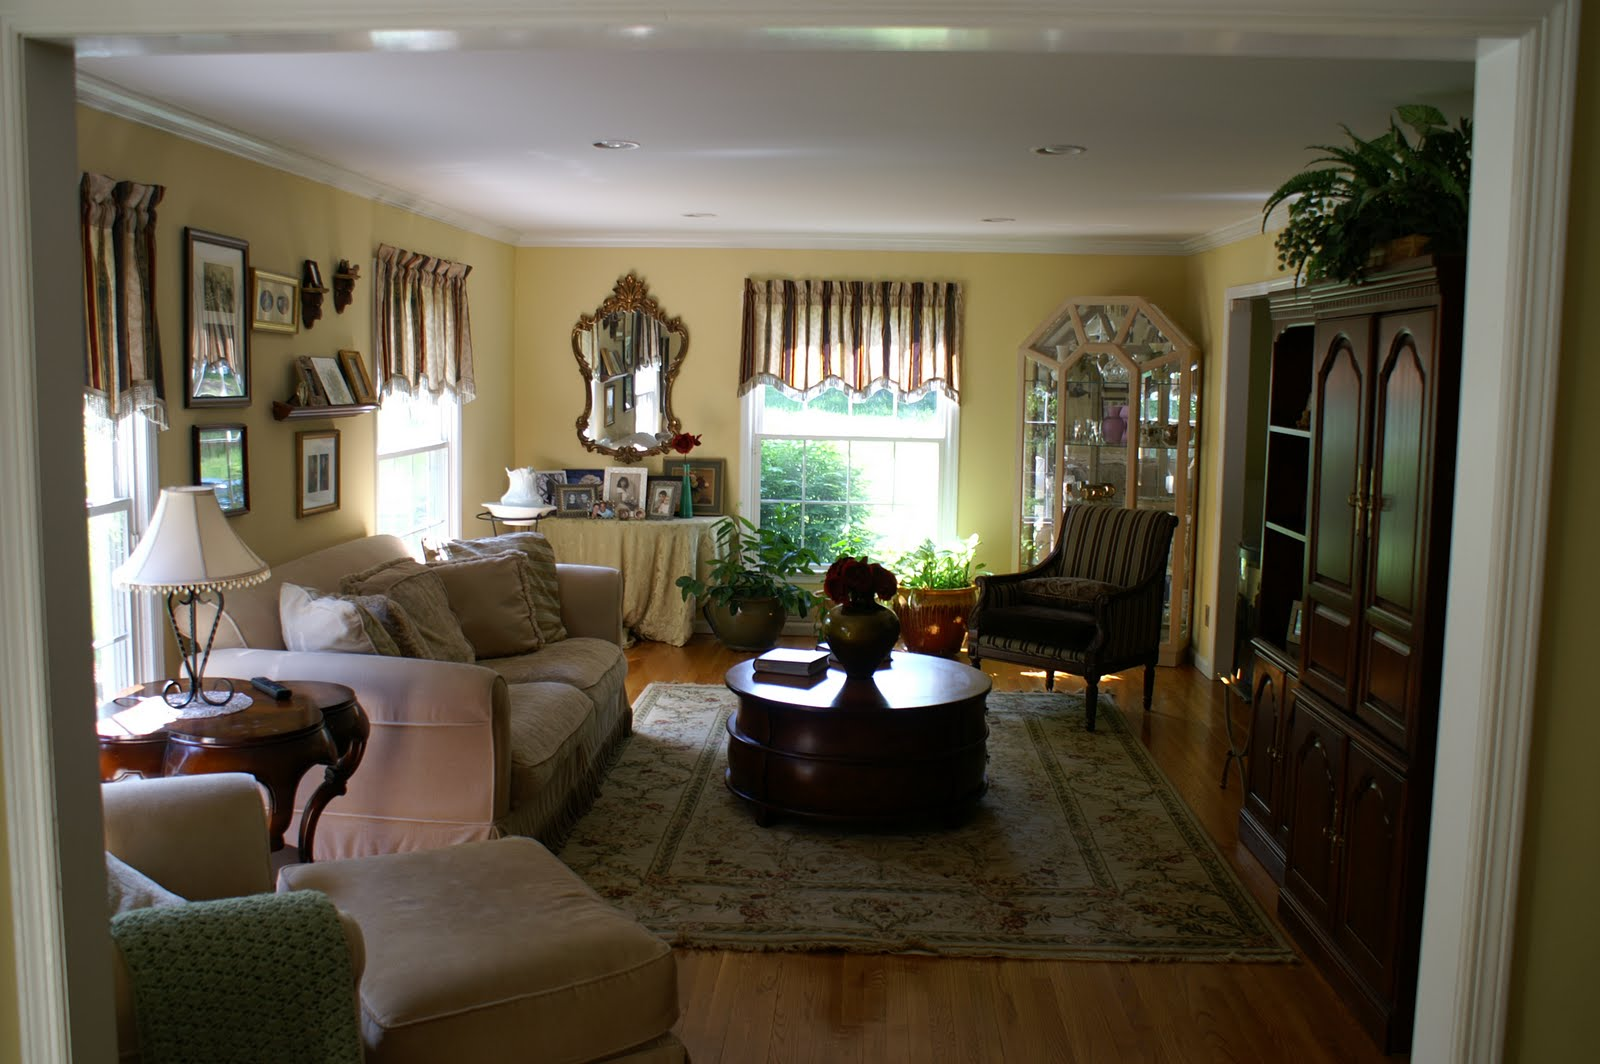 Central nj real estate update colts neck nj reservoir for Colts bedroom ideas